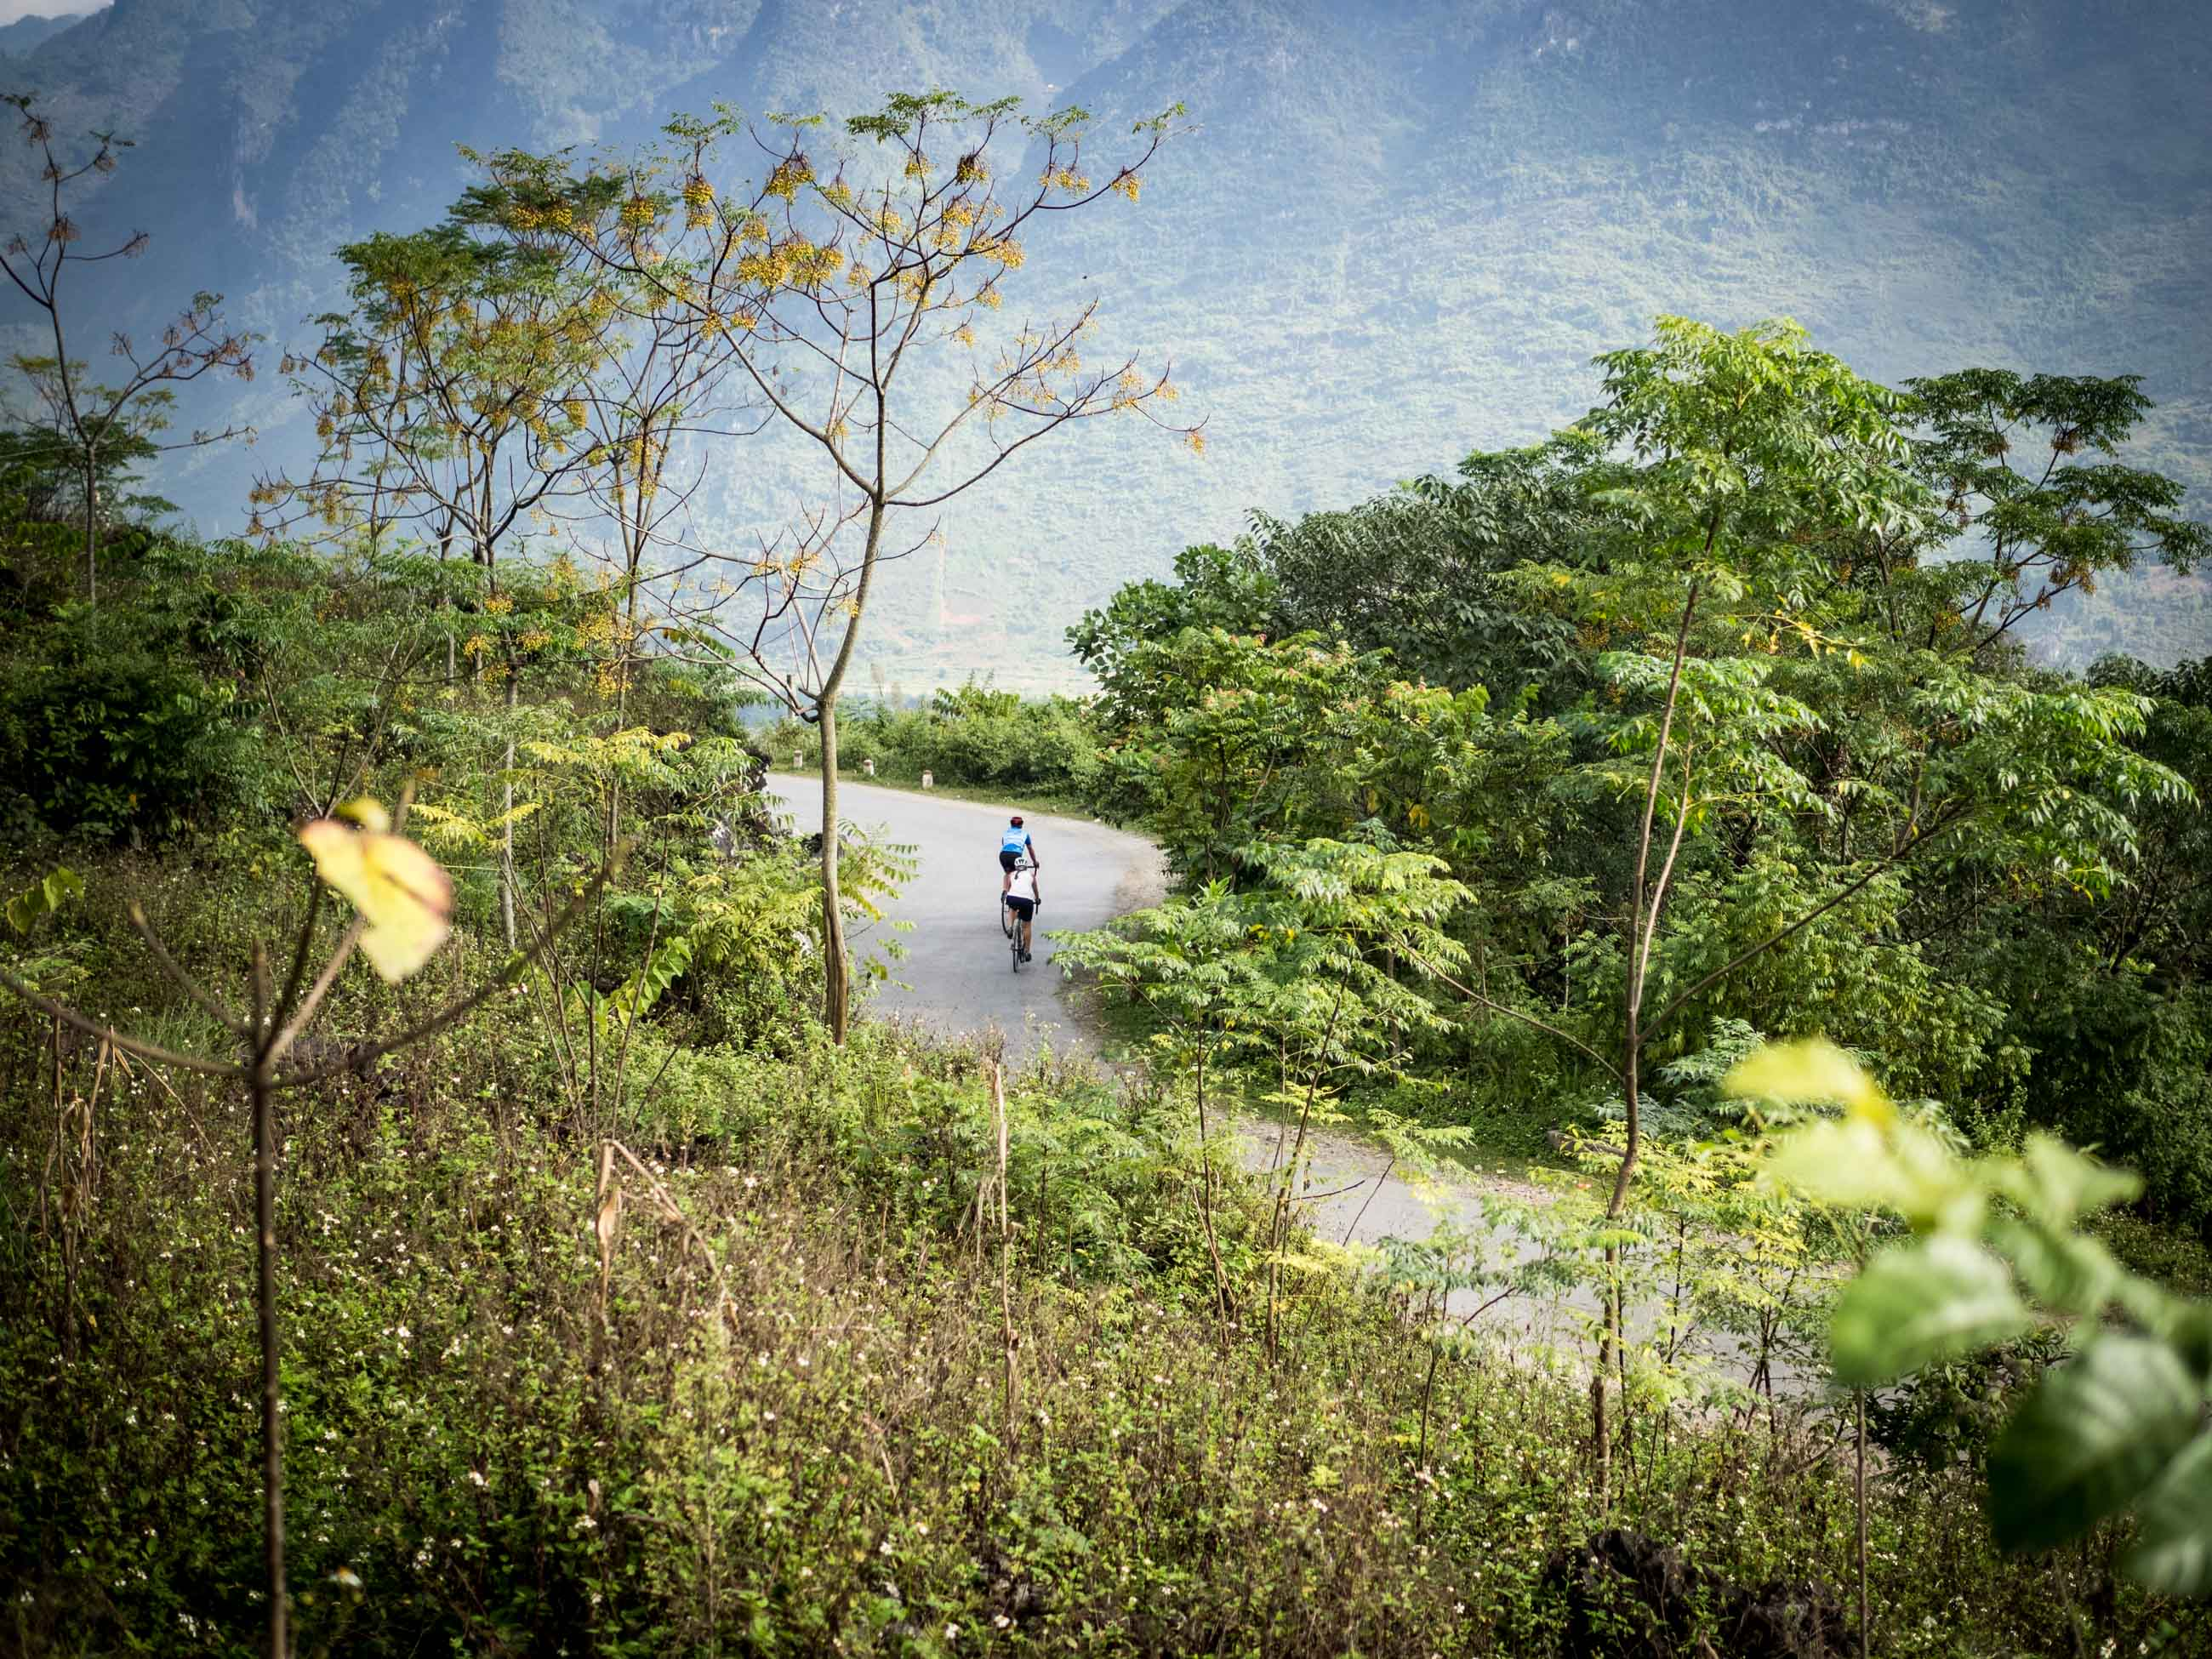 Cycling tour holiday in Vietnam - Northeast. The 'Eighteen Special